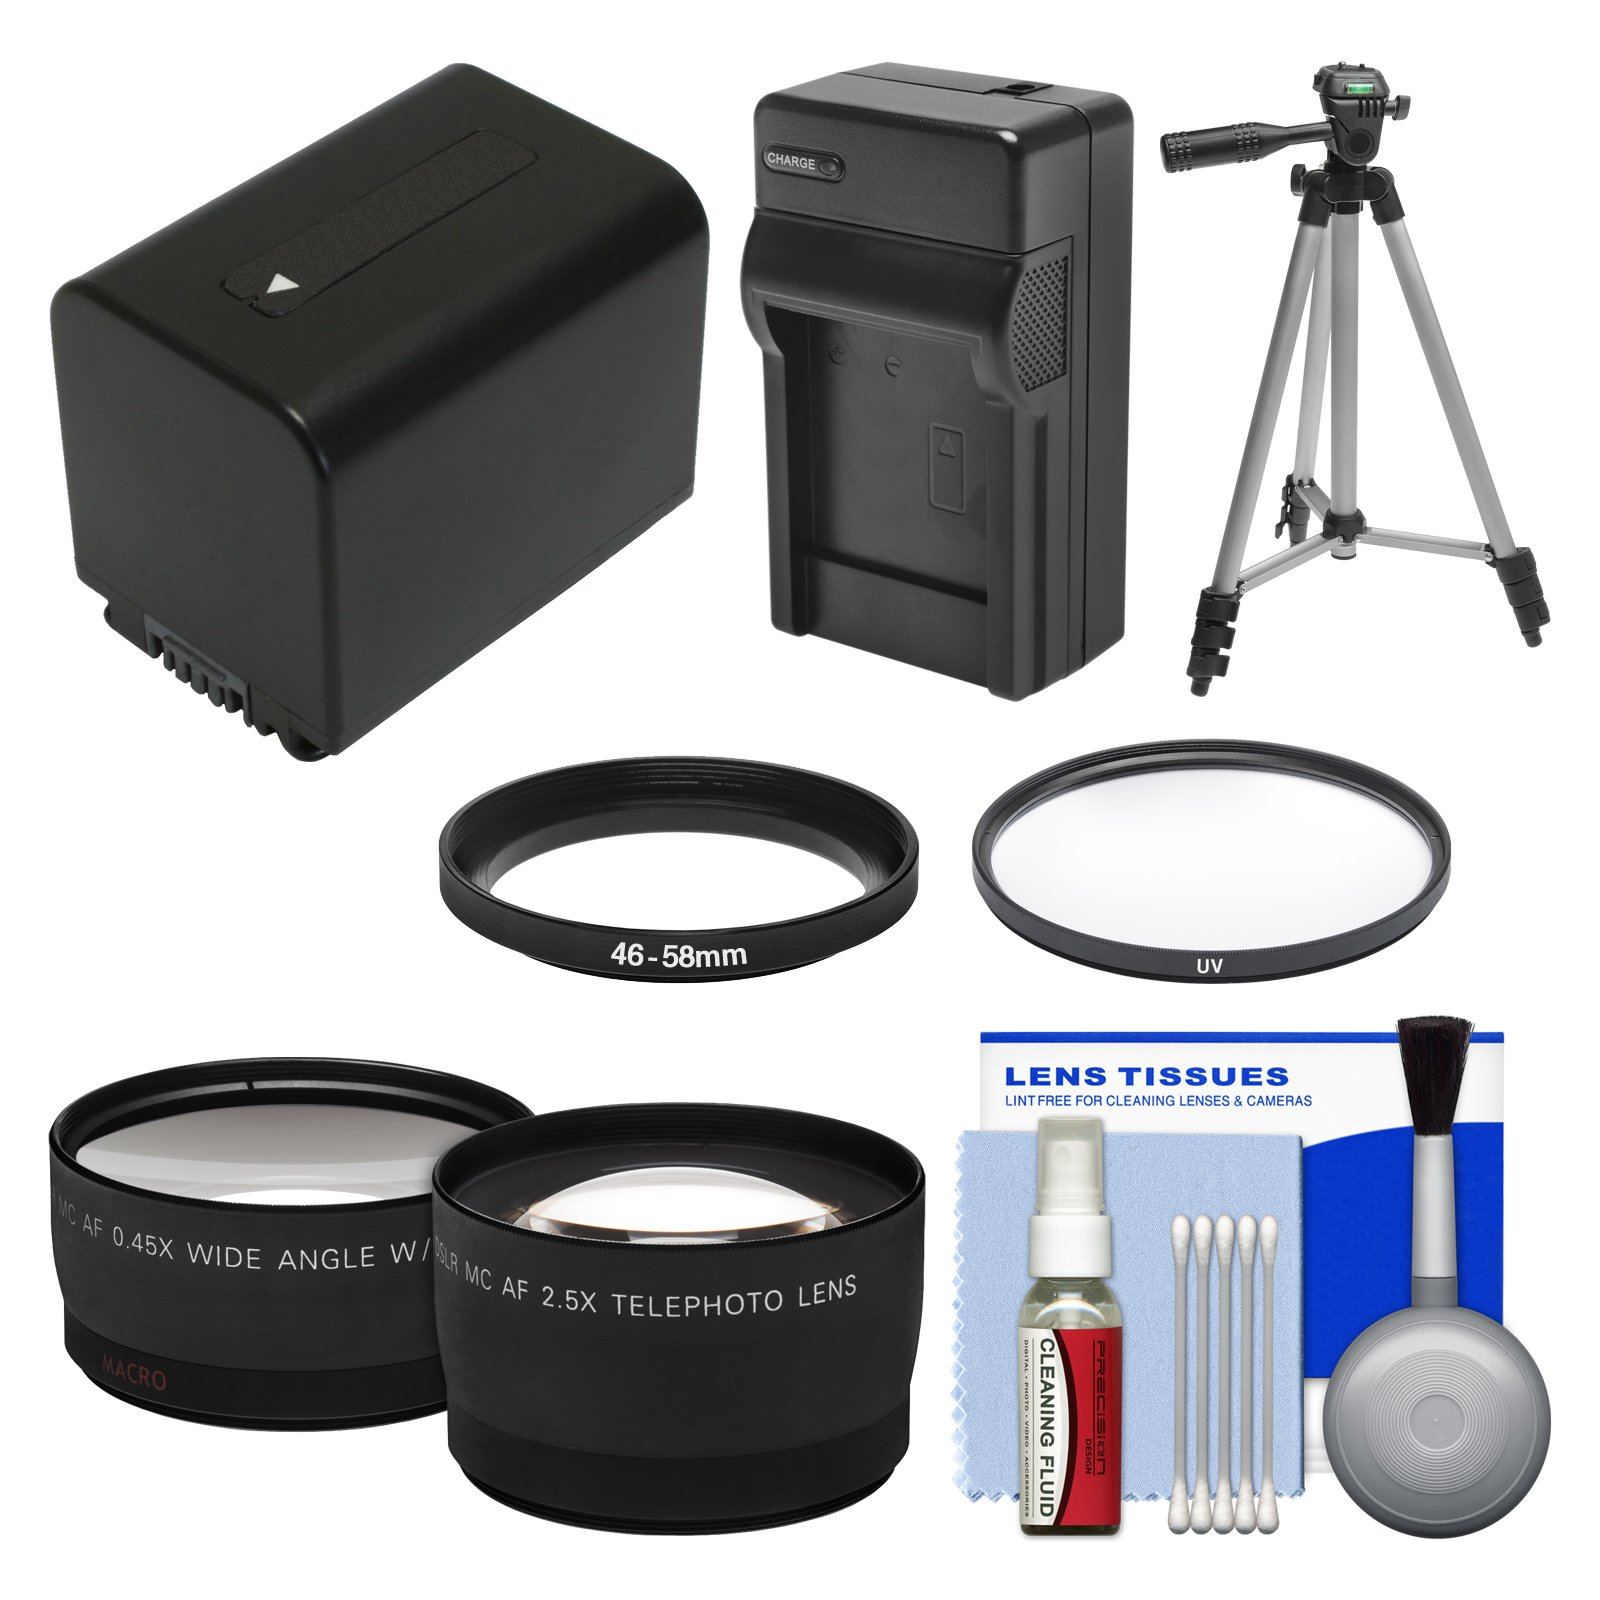 Essentials Bundle for Sony Handycam HDR-PJ540, HDR-PJ670 & HDR-PJ810 Camcorders with NP-FV70 Battery & Charger + Tripod + Filter + Tele/Wide Lens Kit by Unknown